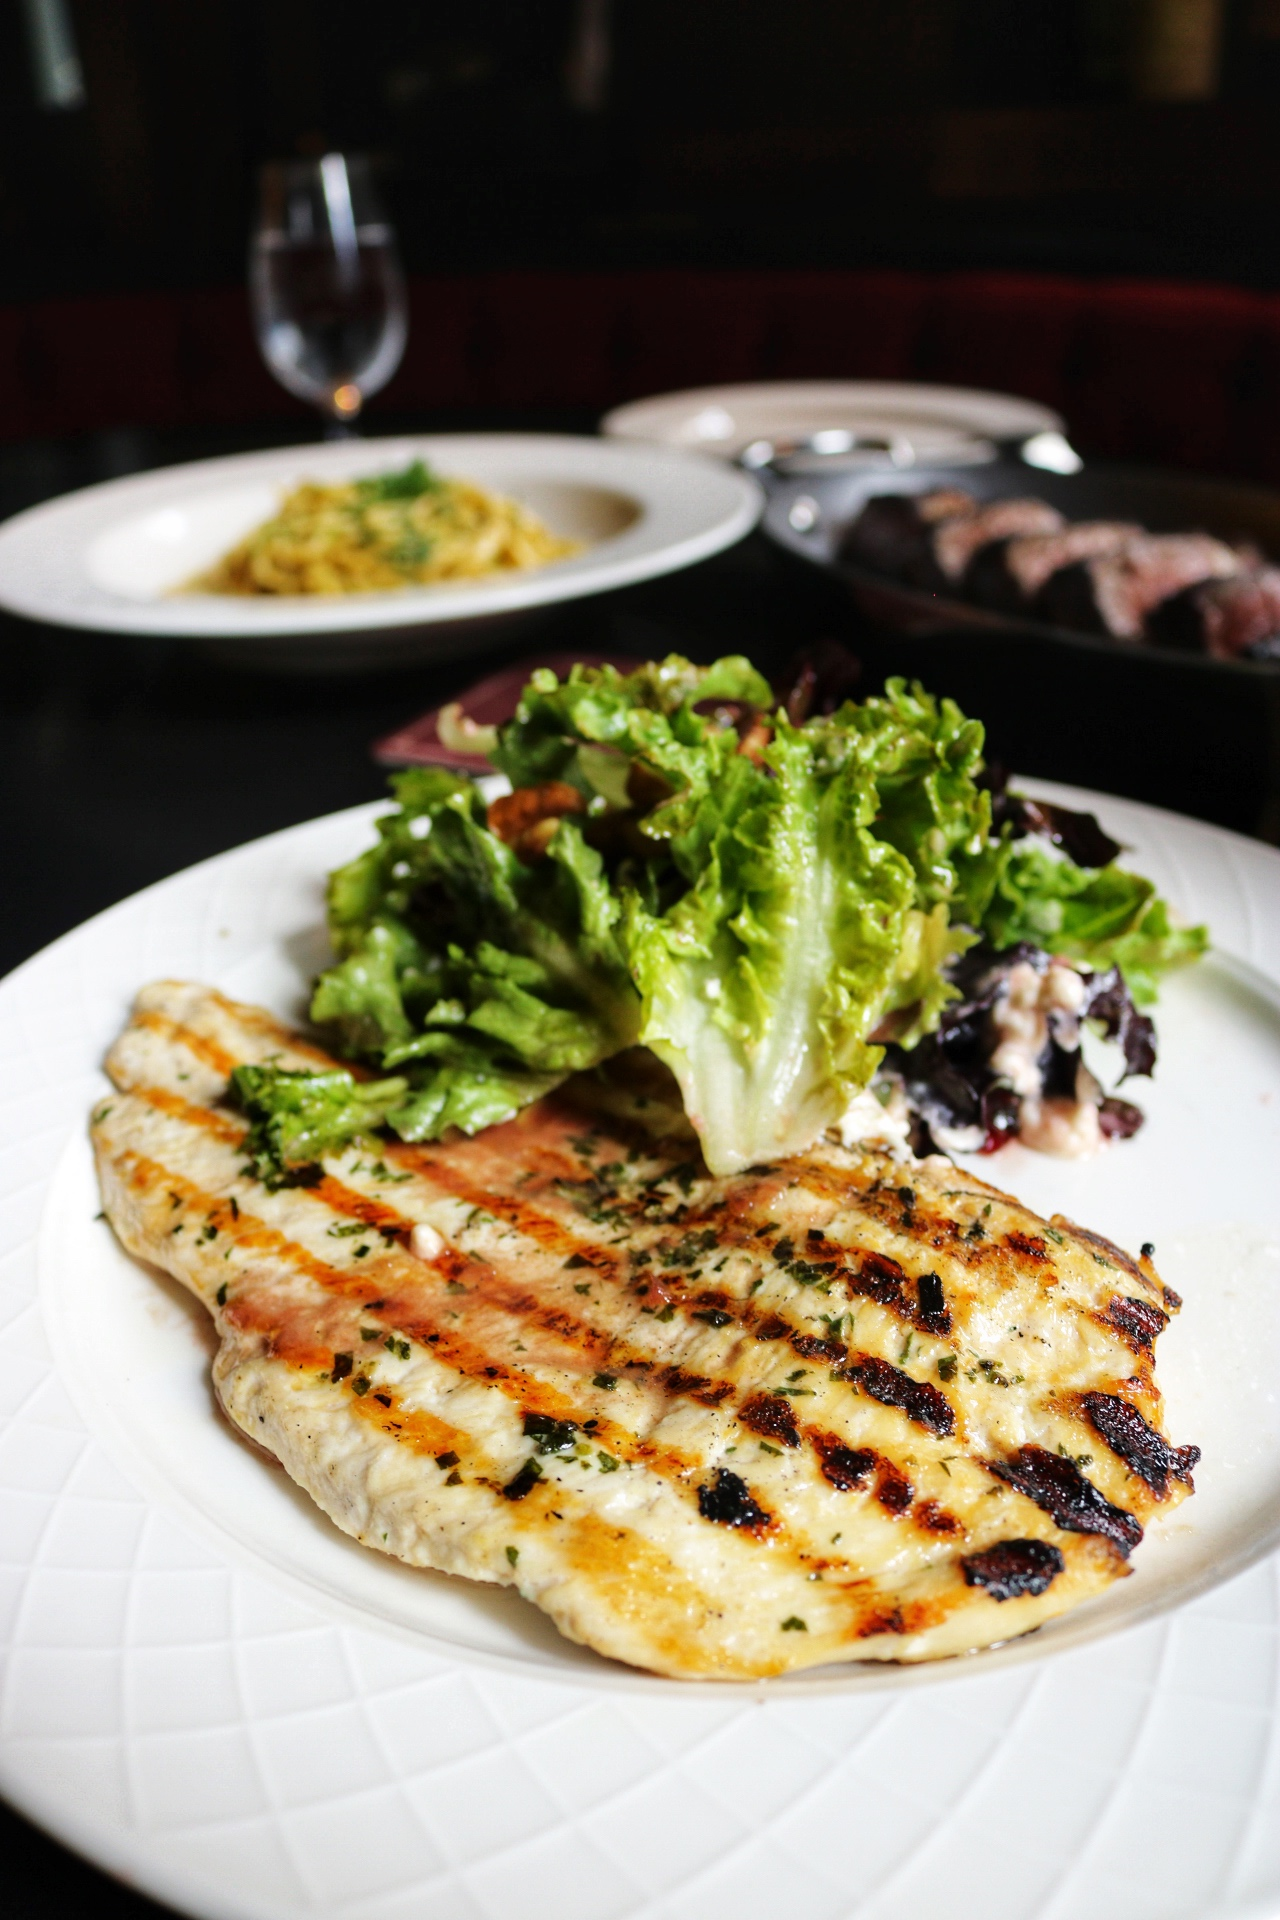 Chicken paillard harrys nyc